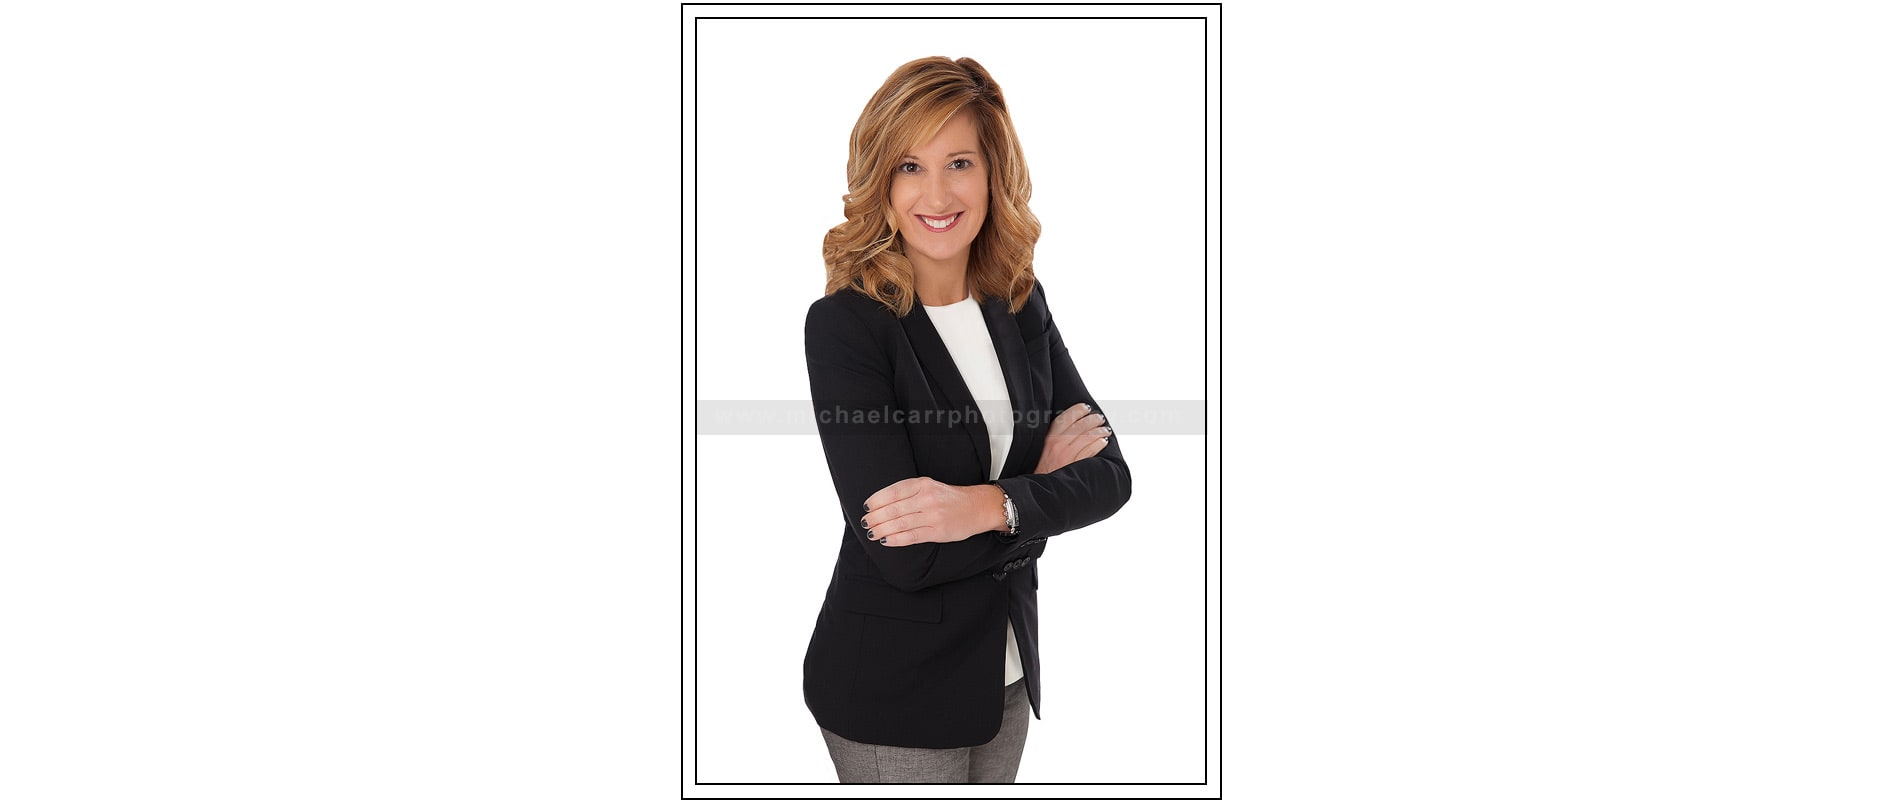 Women Business Portraits